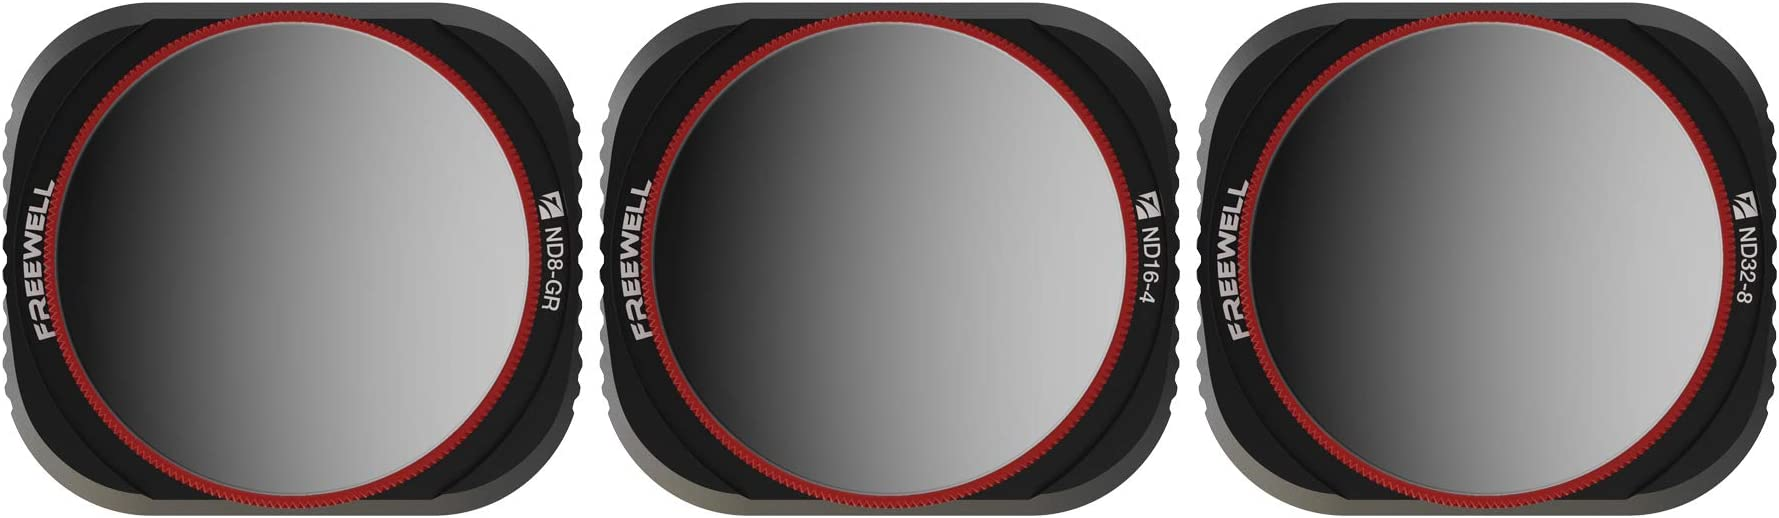 Freewell Landscape Gradient – 4K Series – 3Pack ND8-GR, ND16-4,ND32-8 Camera Lens Filters Compatible with Mavic 2 Pro Drone